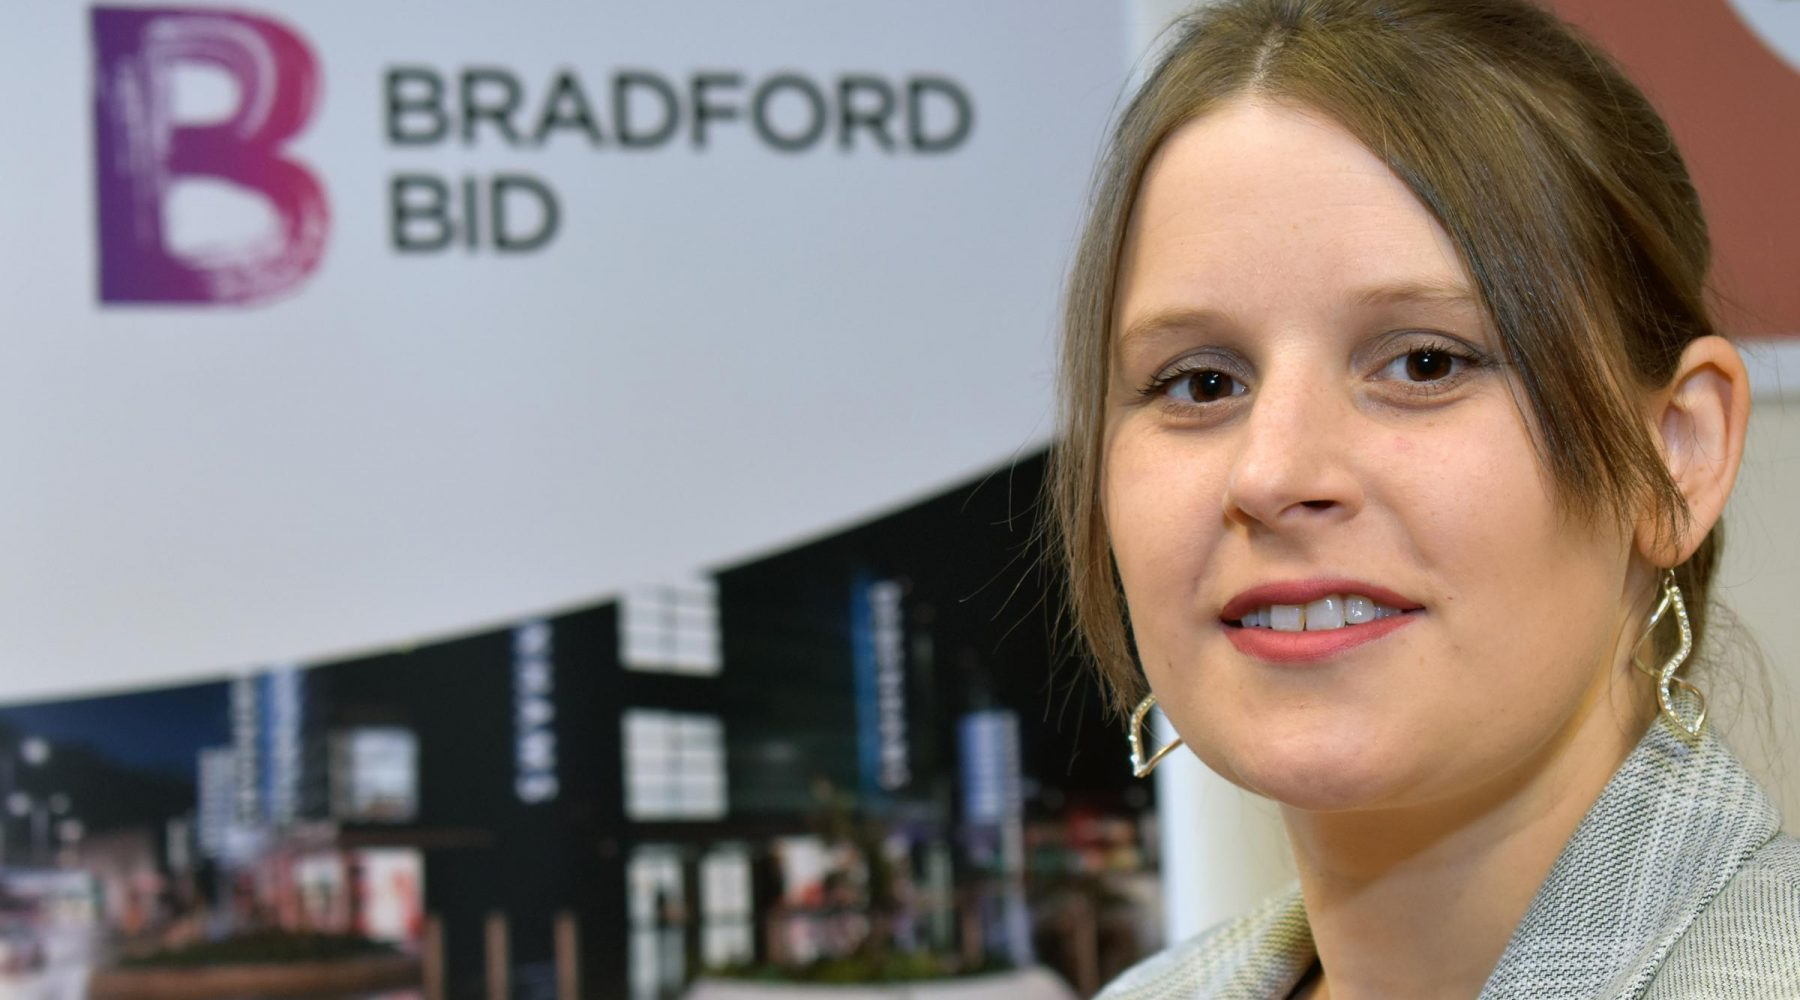 New role a 'huge step forward' for Bradford…